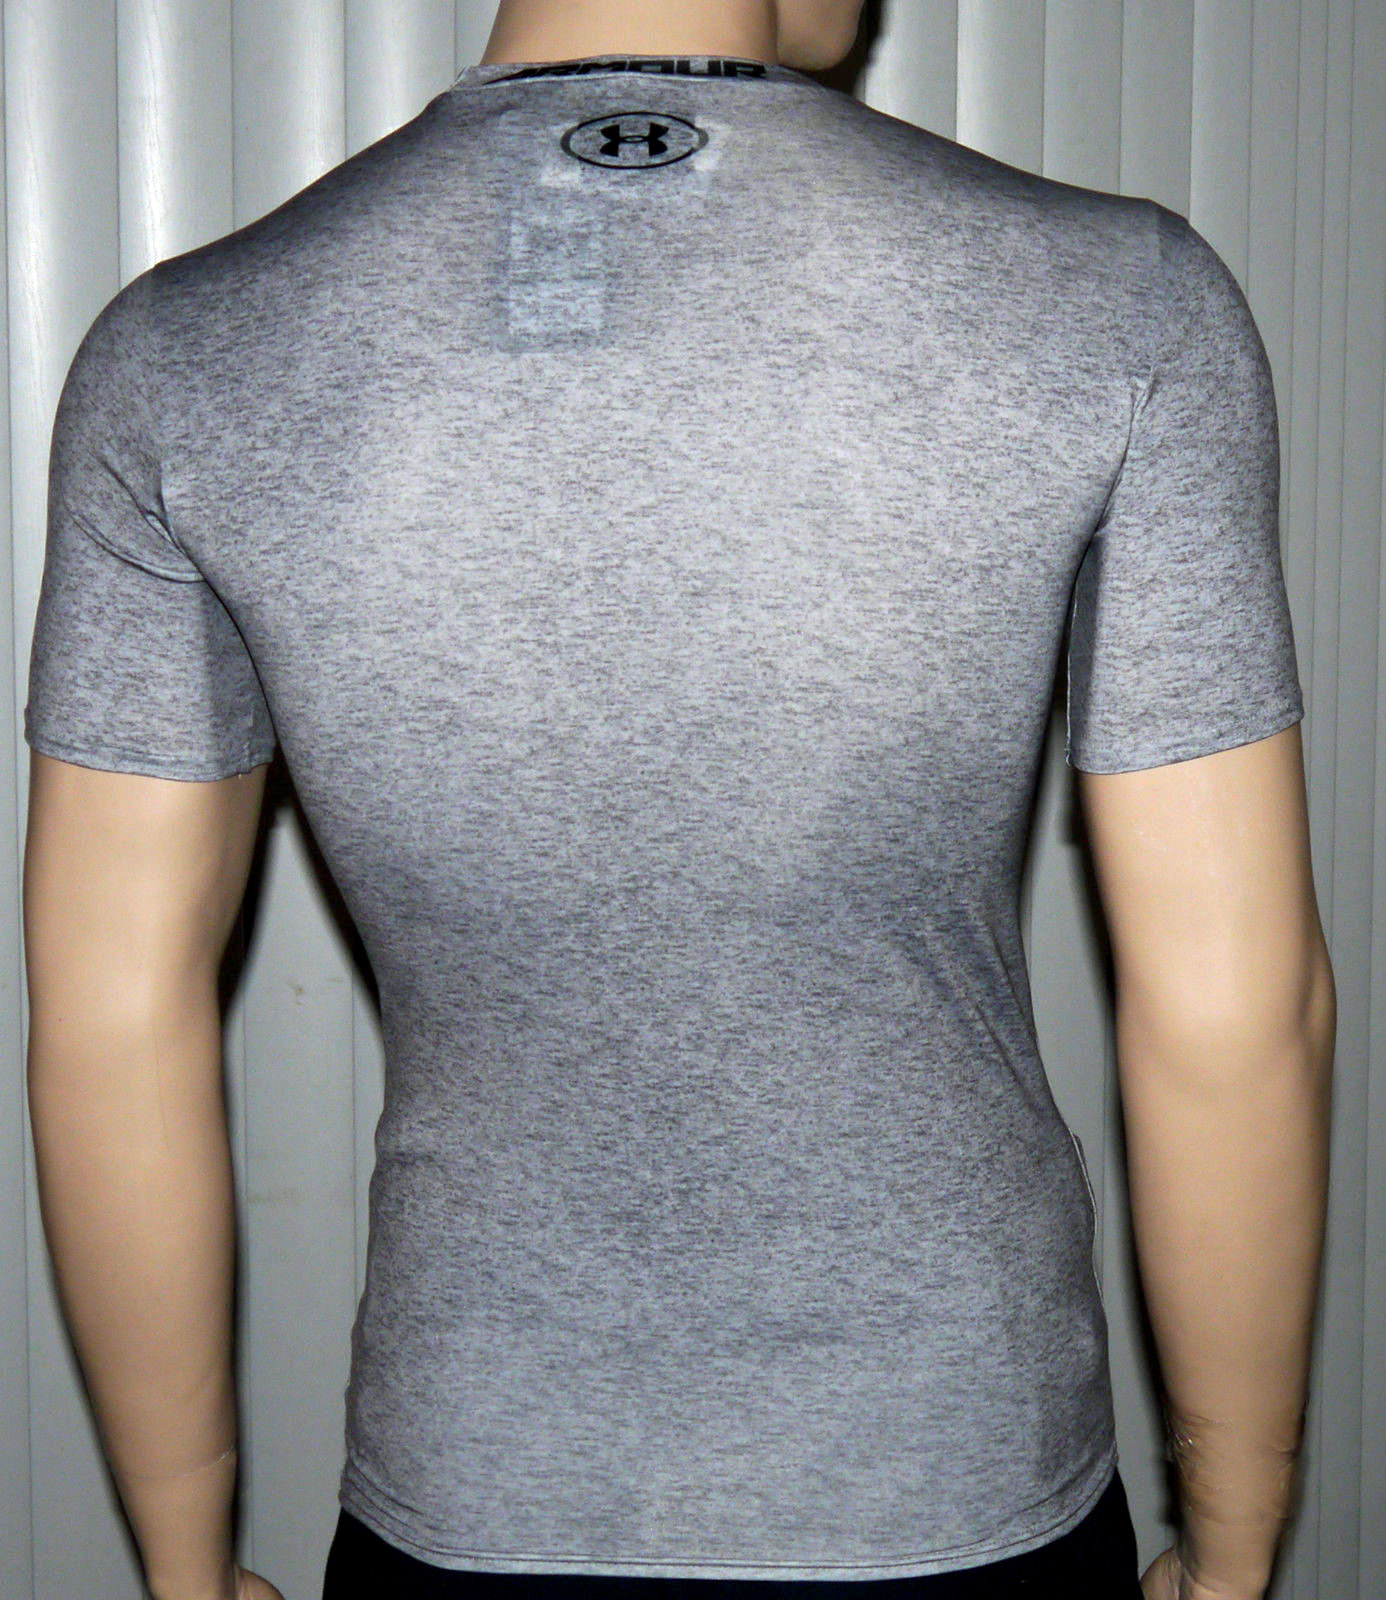 Under Armour Men's UA Freedom Army Gray Heather/Black Compression Shirt (Several Sizes)